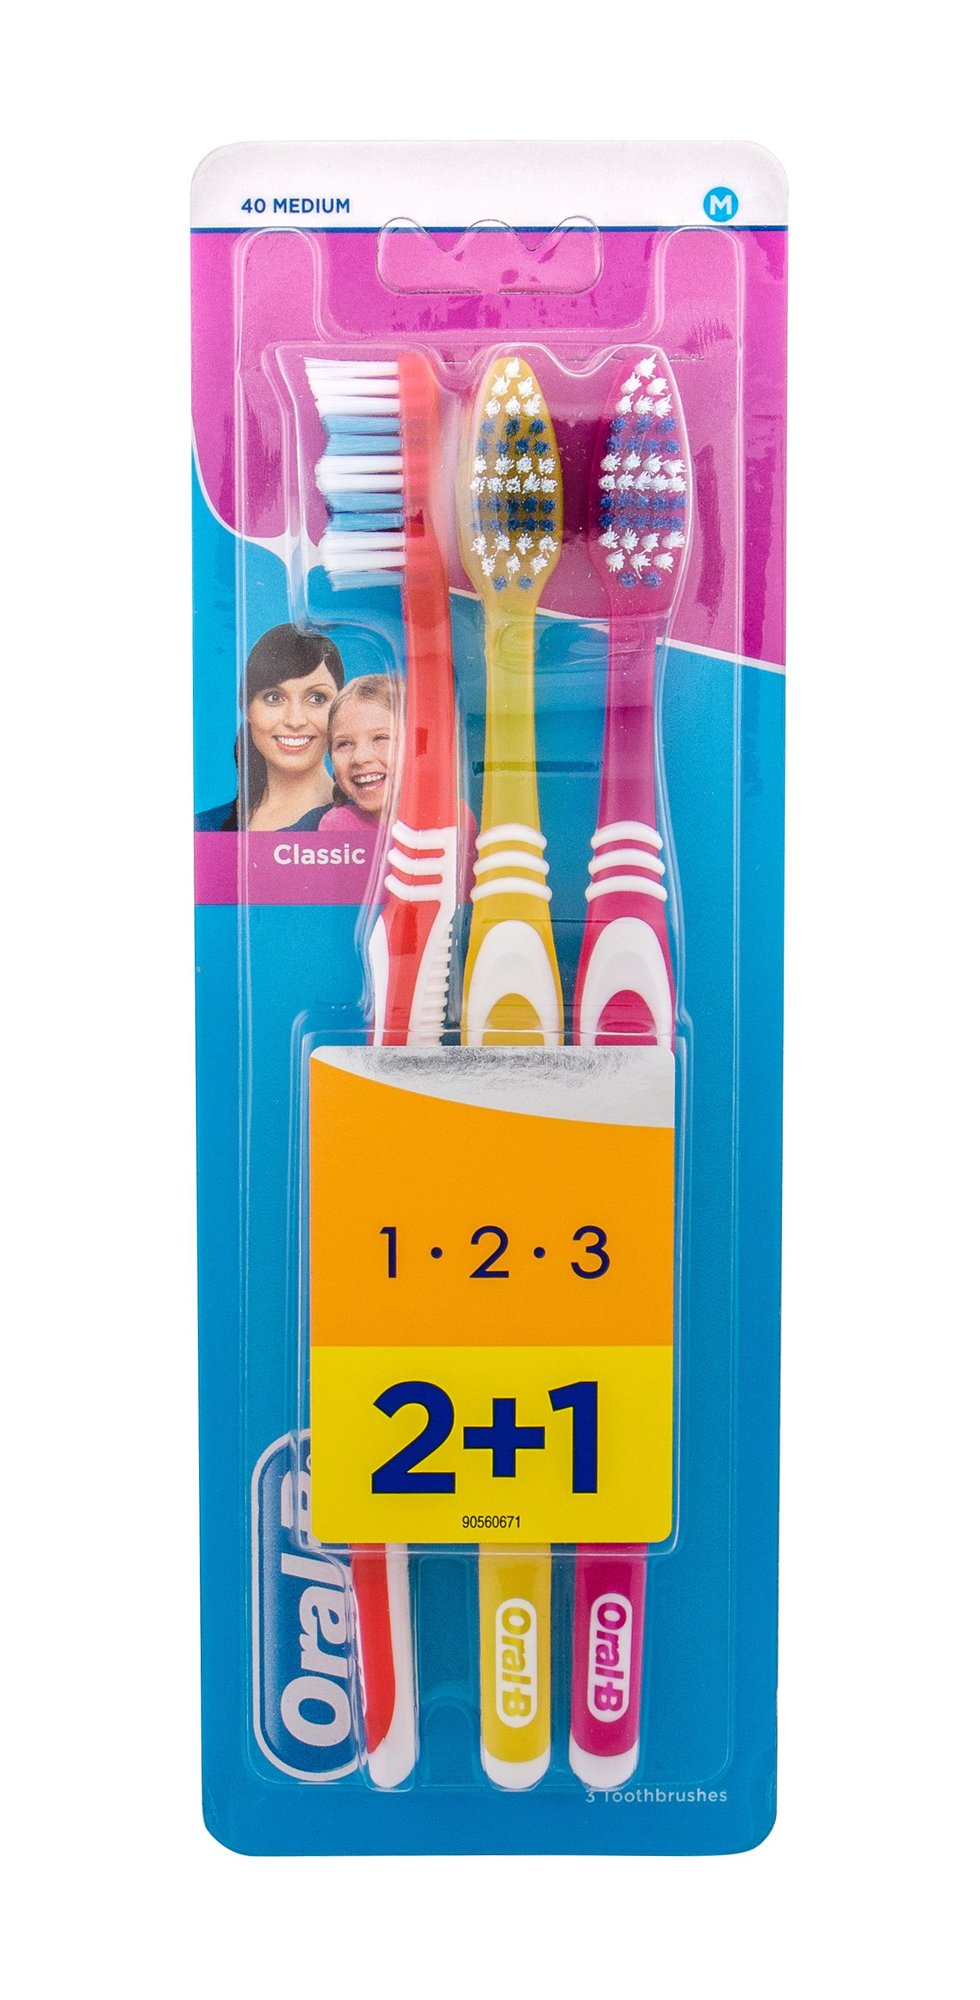 Oral-B Toothbrush Toothbrush 3ml Red, Yellow, Pink Classic